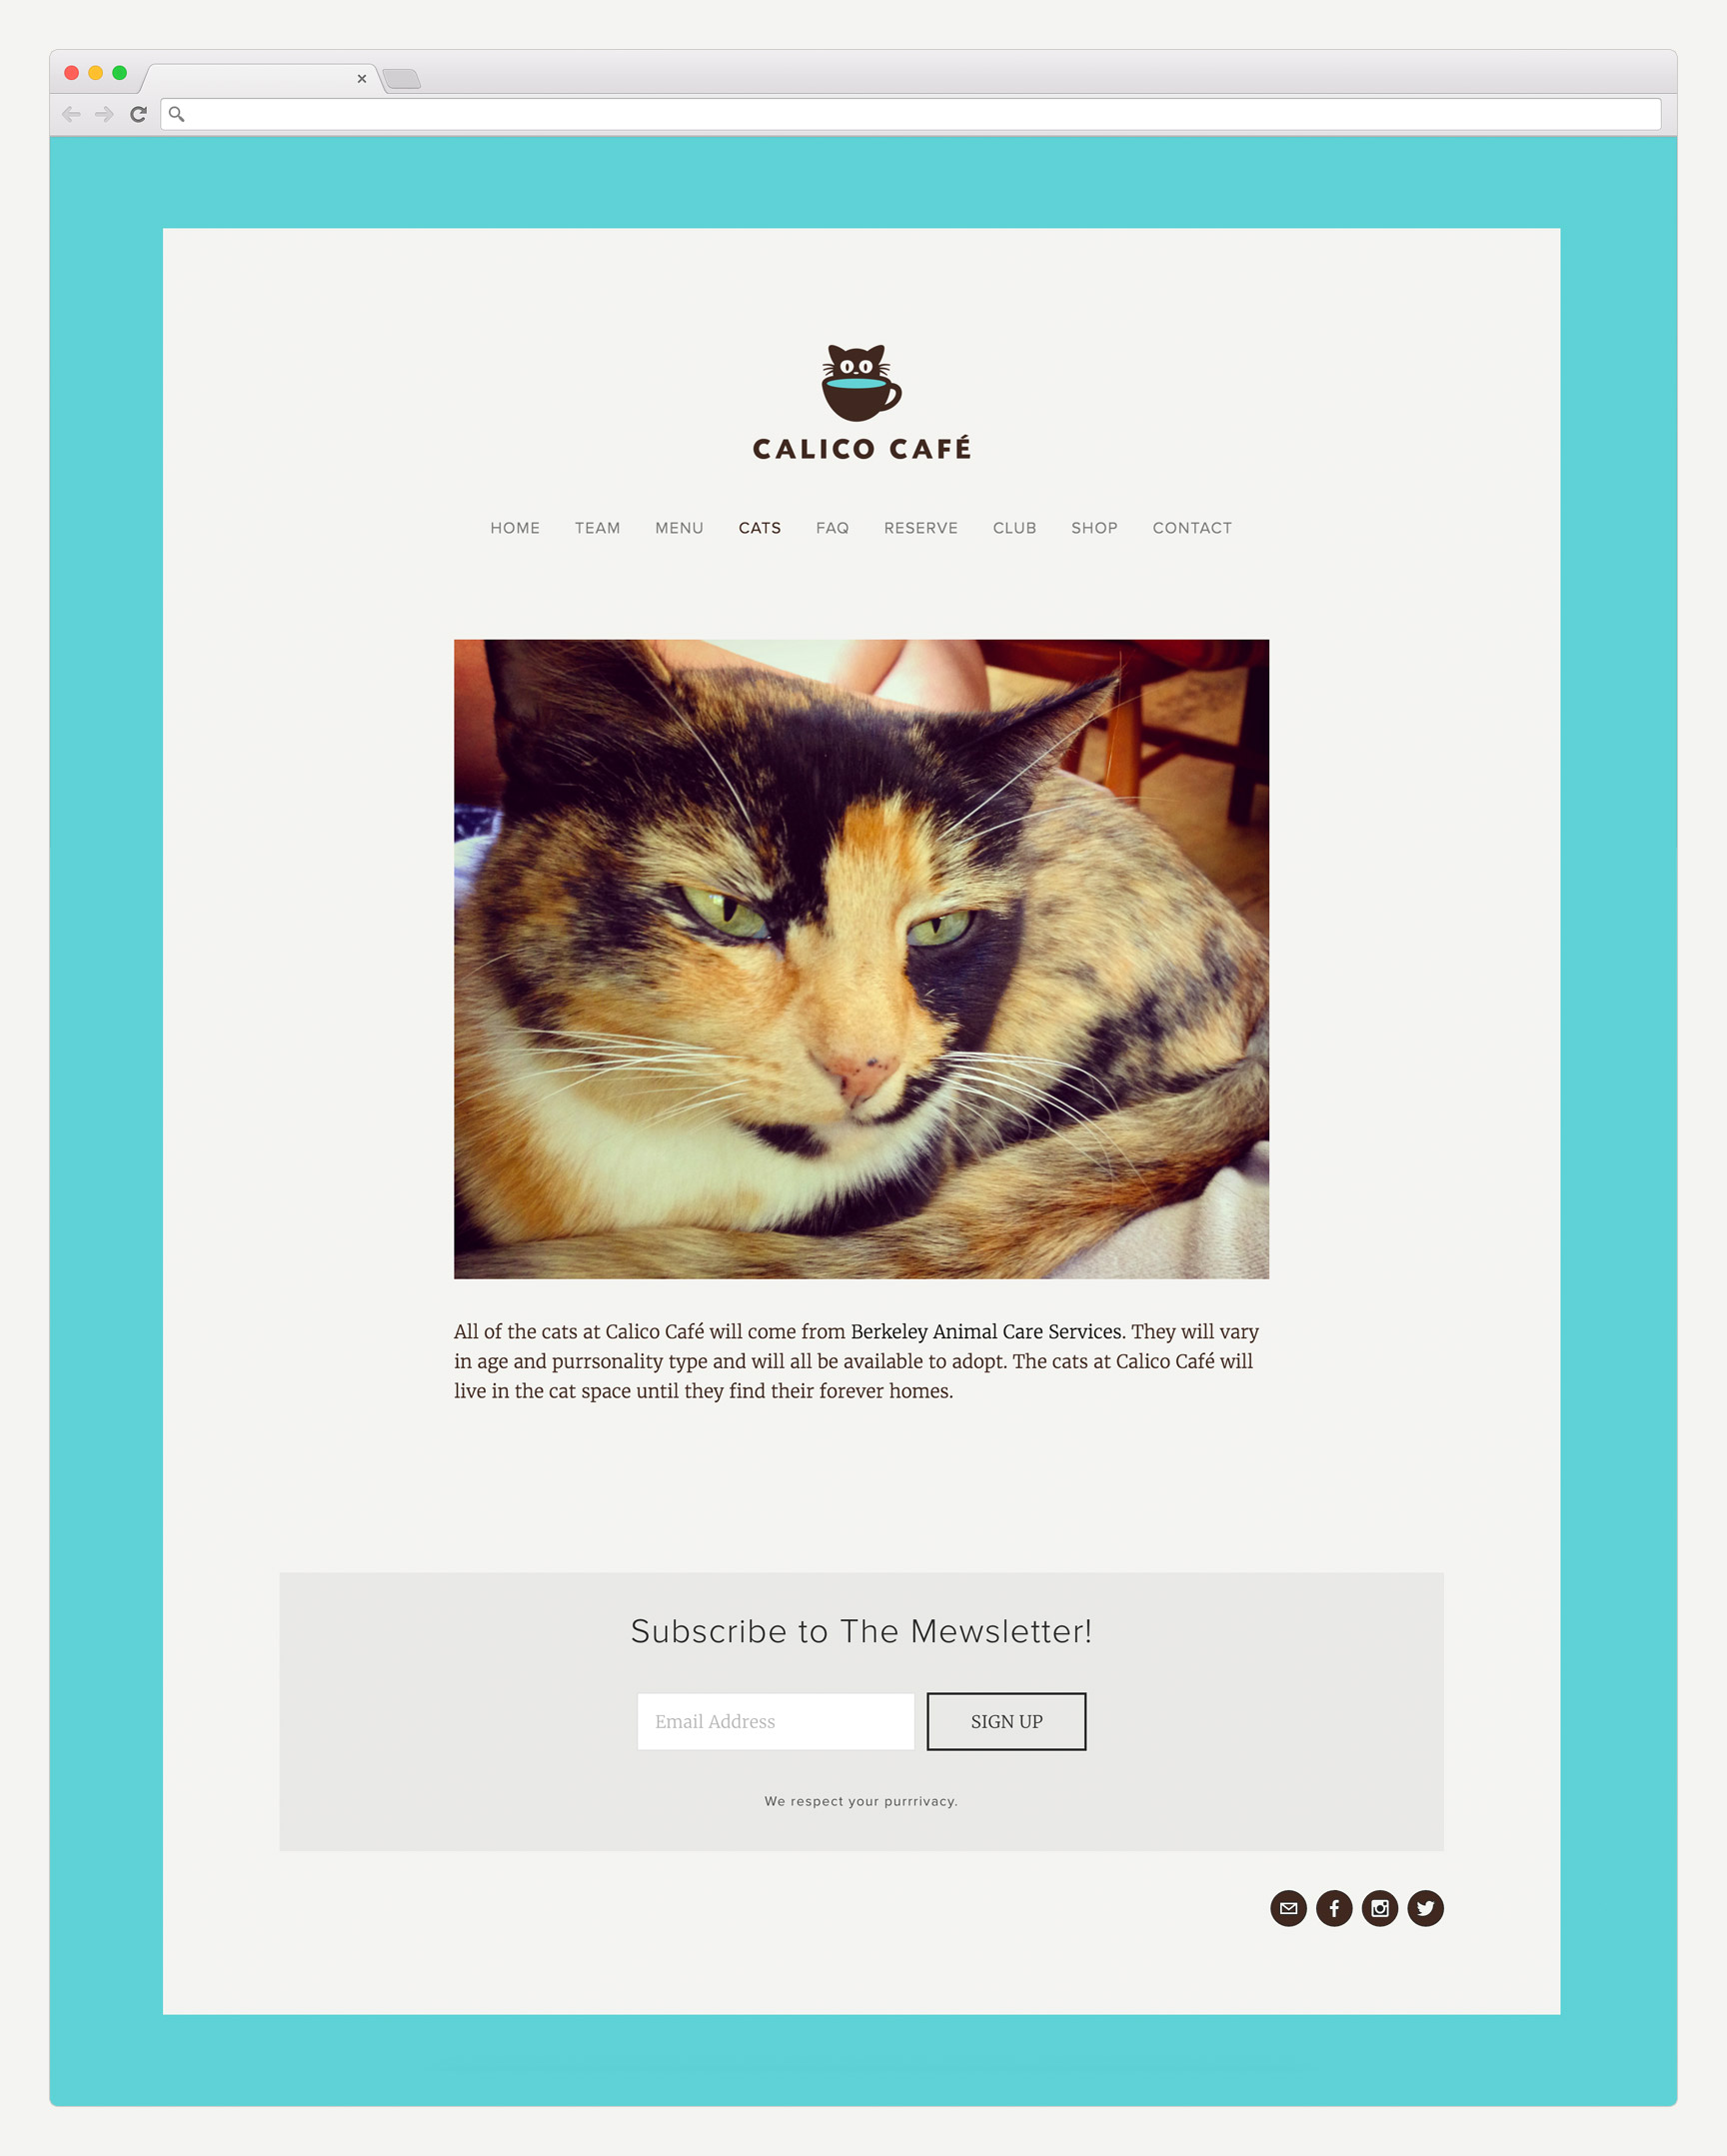 Calico Cafe Website Design